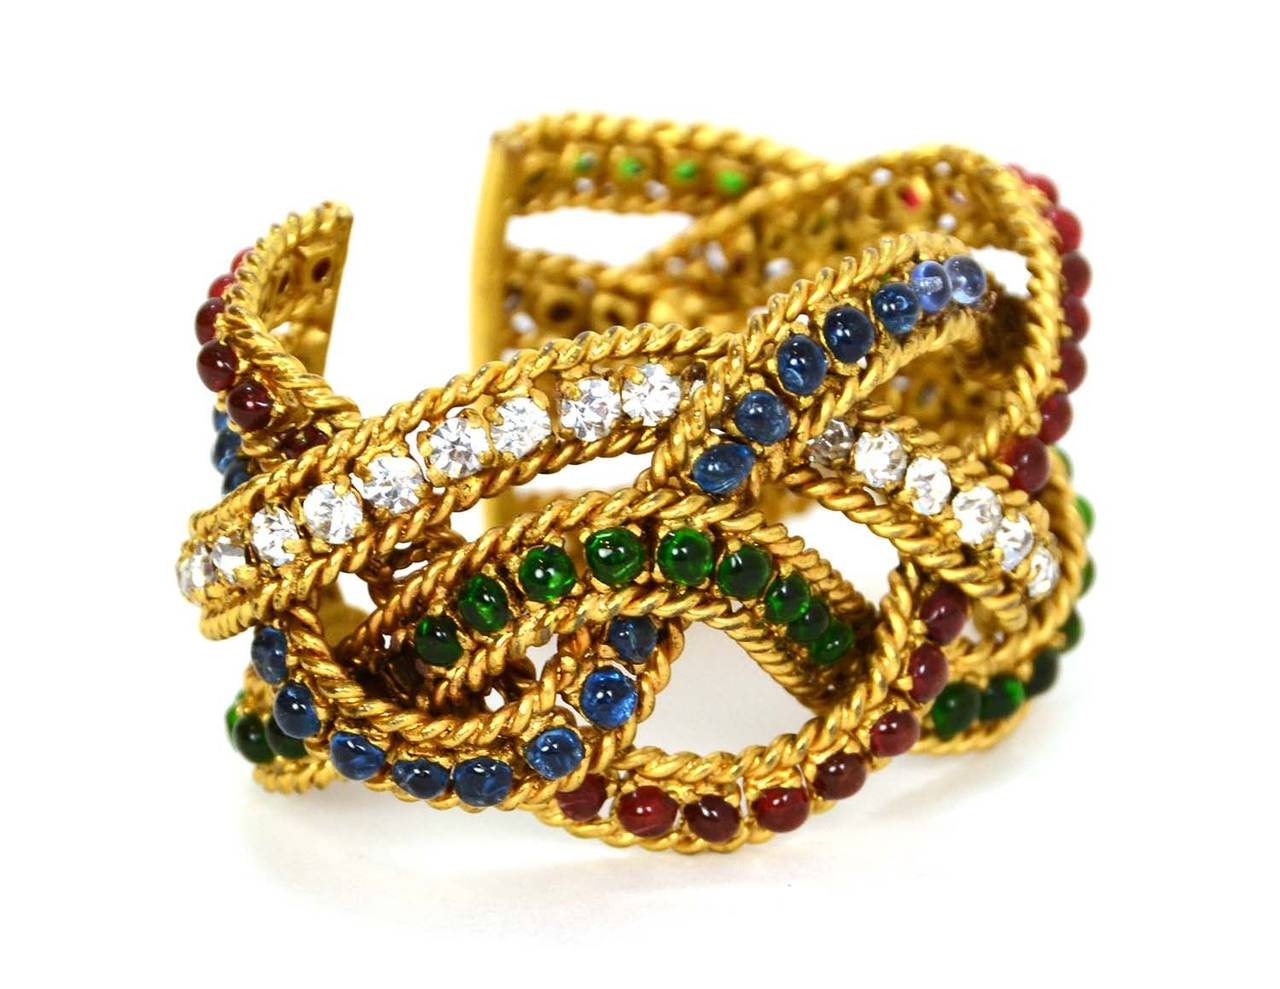 Chanel Vintage Gripoix & Woven Gold Cuff Features red, green and blue gripoix and crystals throughout  Made in: France Stamp: Chanel Closure: None Color: Gold, red, green and blue Materials: Metal, glass and crystals Overall Condition: Very god